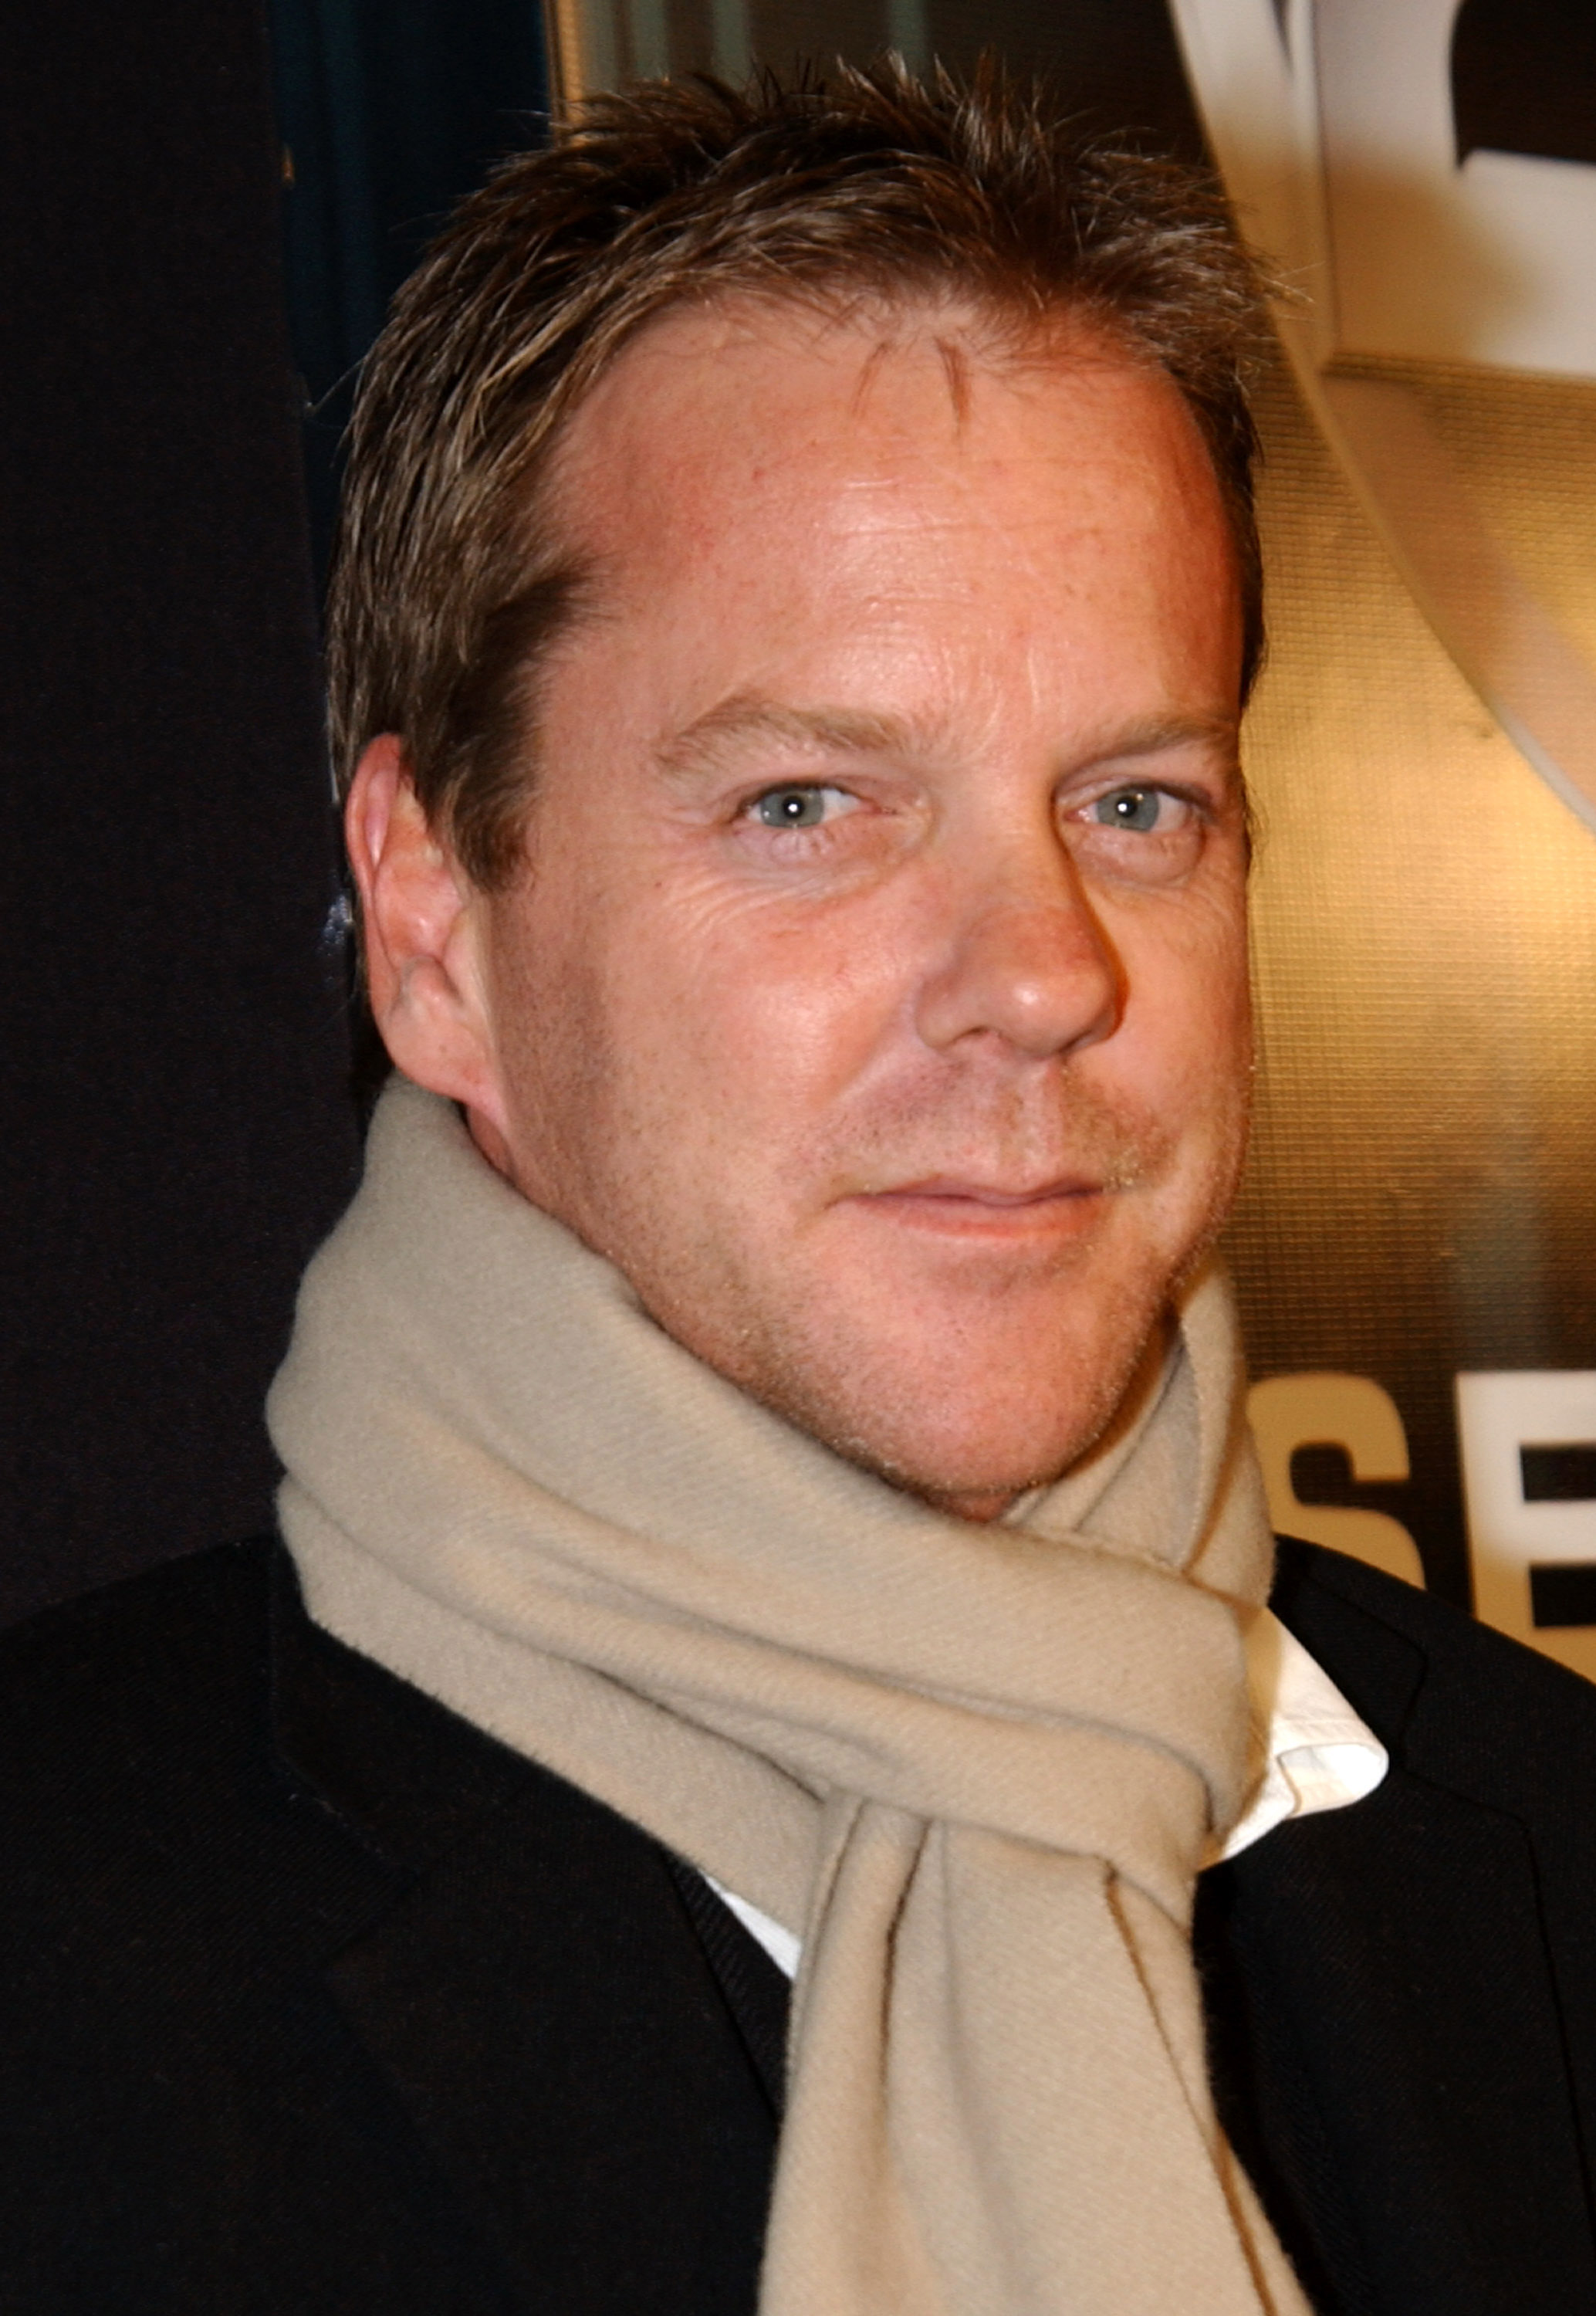 kiefer sutherland youngkiefer sutherland wiki, kiefer sutherland big boss, kiefer sutherland young, kiefer sutherland mirrors, kiefer sutherland 24, kiefer sutherland wife, kiefer sutherland eyes, kiefer sutherland address los angeles, kiefer sutherland and julia roberts, kiefer sutherland tv tropes, kiefer sutherland supercut, kiefer sutherland celebheight, kiefer sutherland ikizi, kiefer sutherland song, kiefer sutherland gladiator movie, kiefer sutherland best movies, kiefer sutherland david hayter, kiefer sutherland photo gallery, kiefer sutherland playing guitar, kiefer sutherland athos